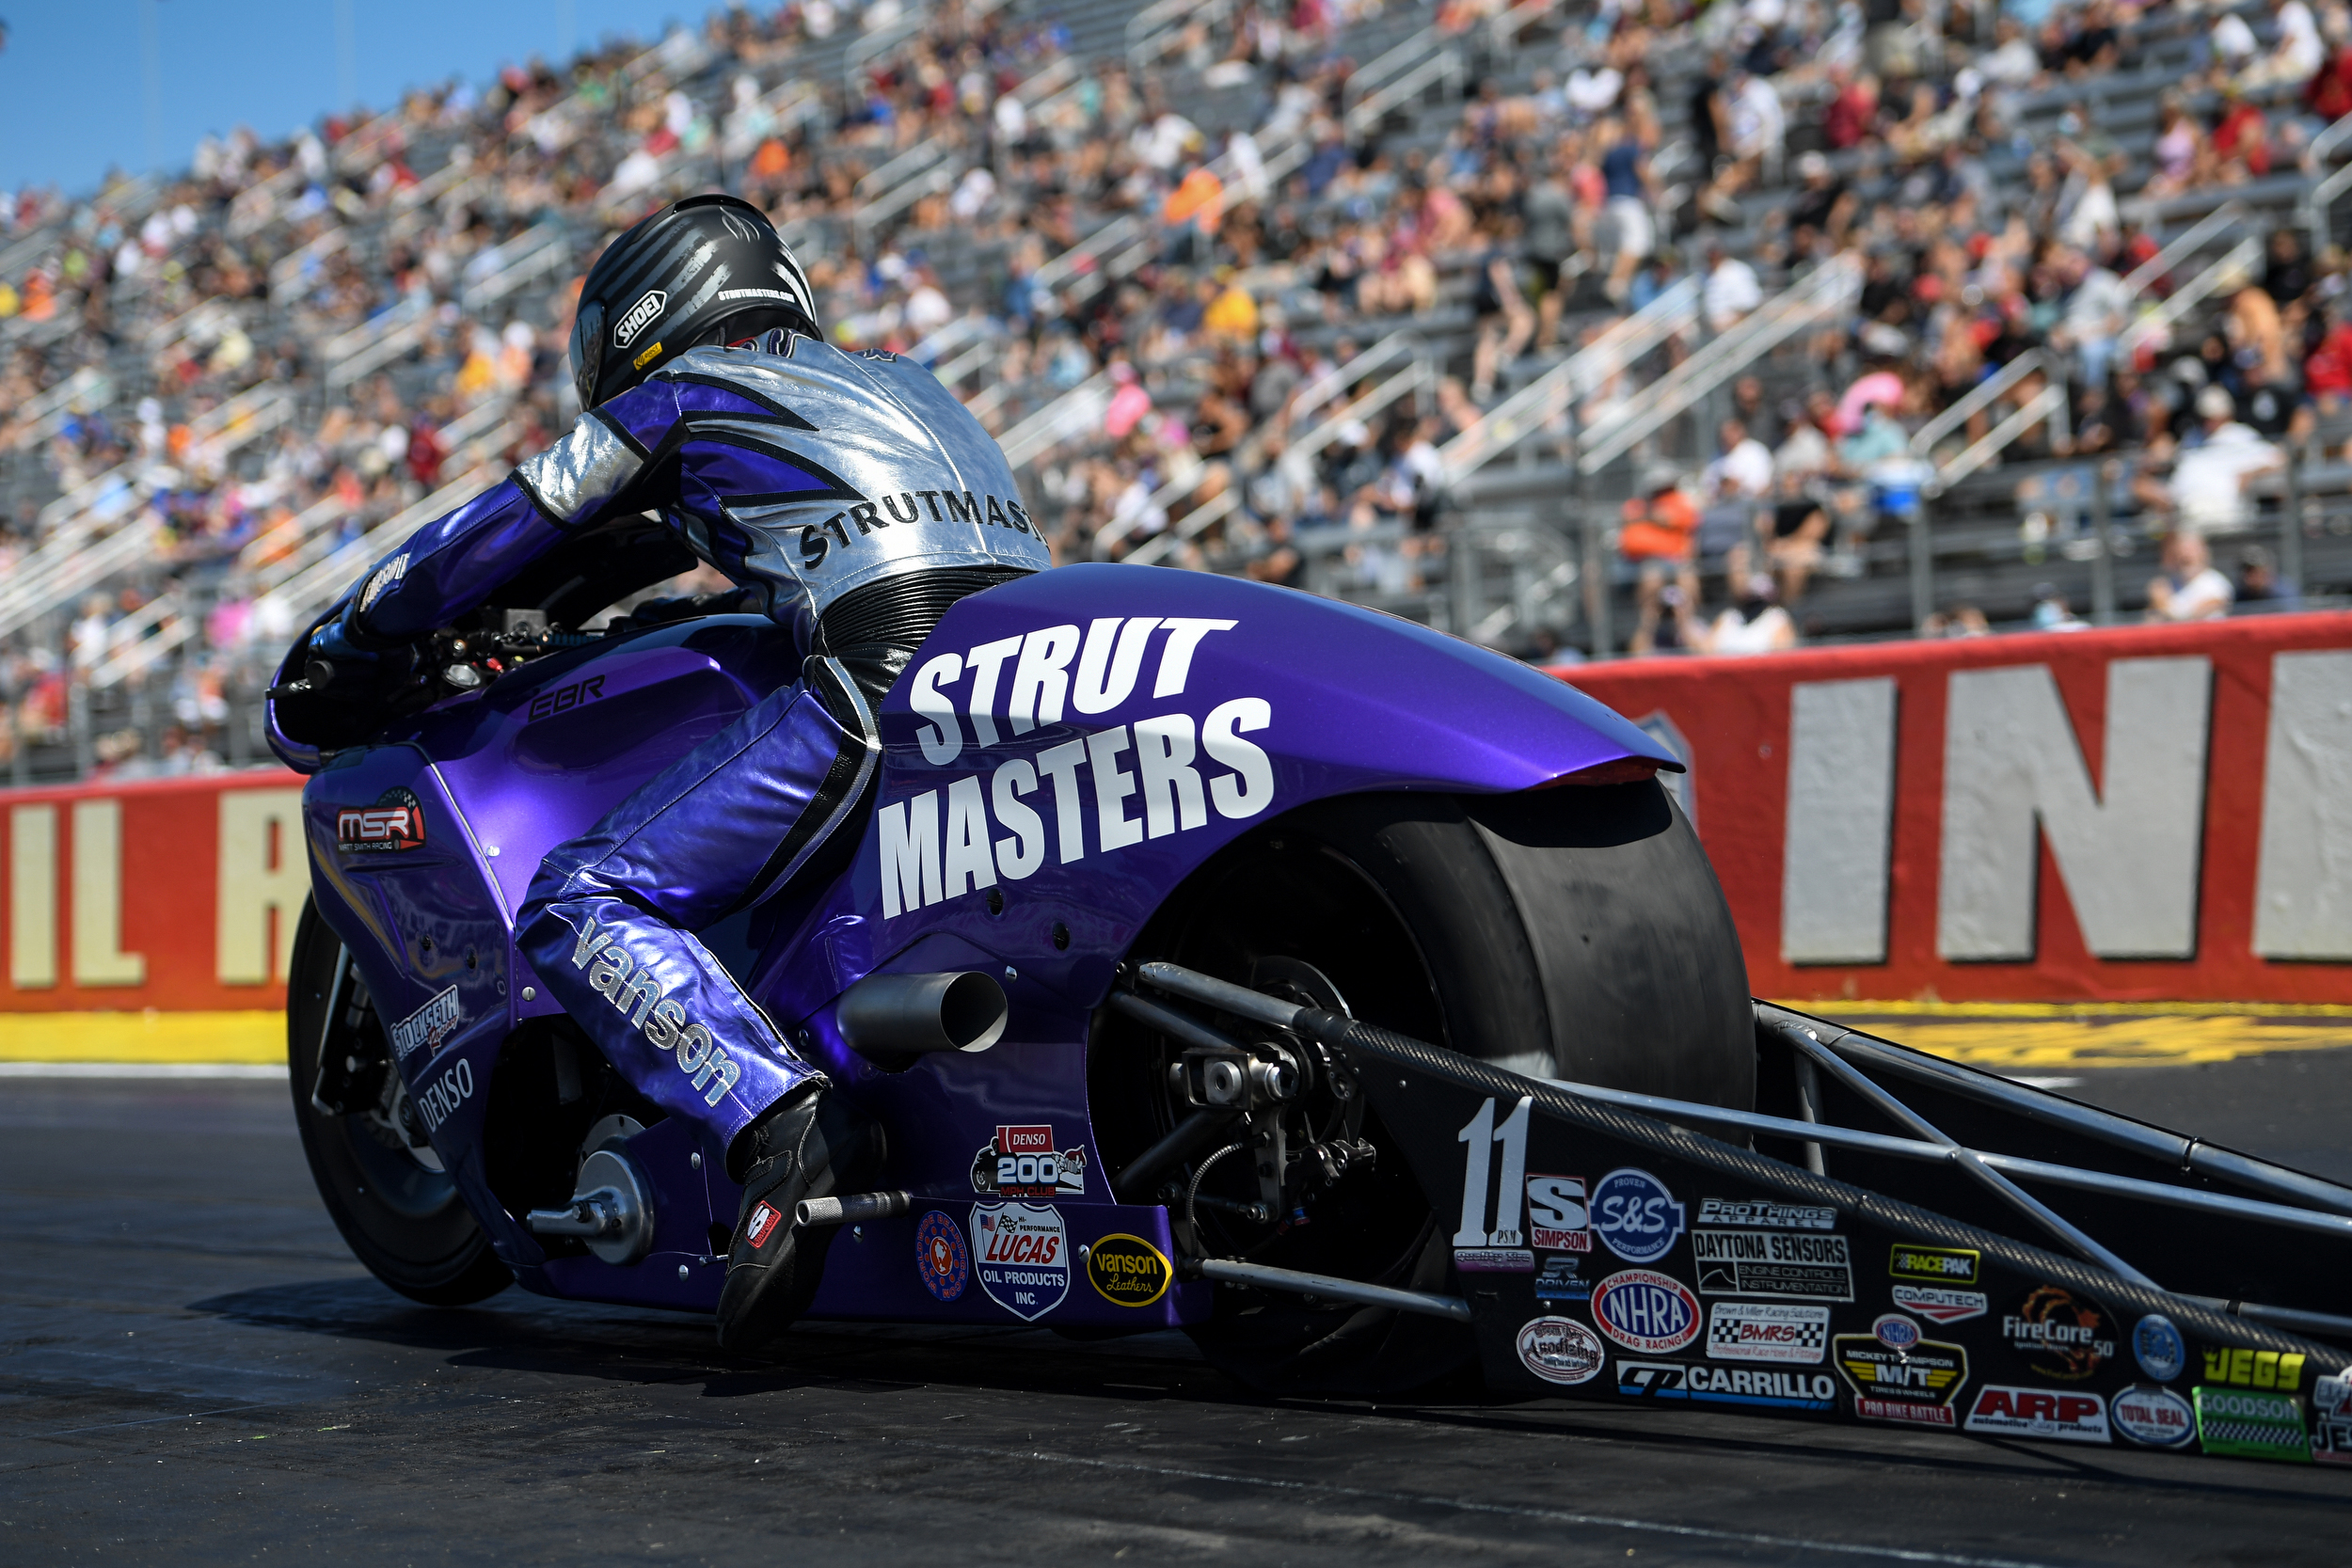 Strutmasters.com Pro Stock Motorcycle rider Scotty Pollacheck racing on Saturday at the Denso Spark Plugs NHRA U.S. Nationals